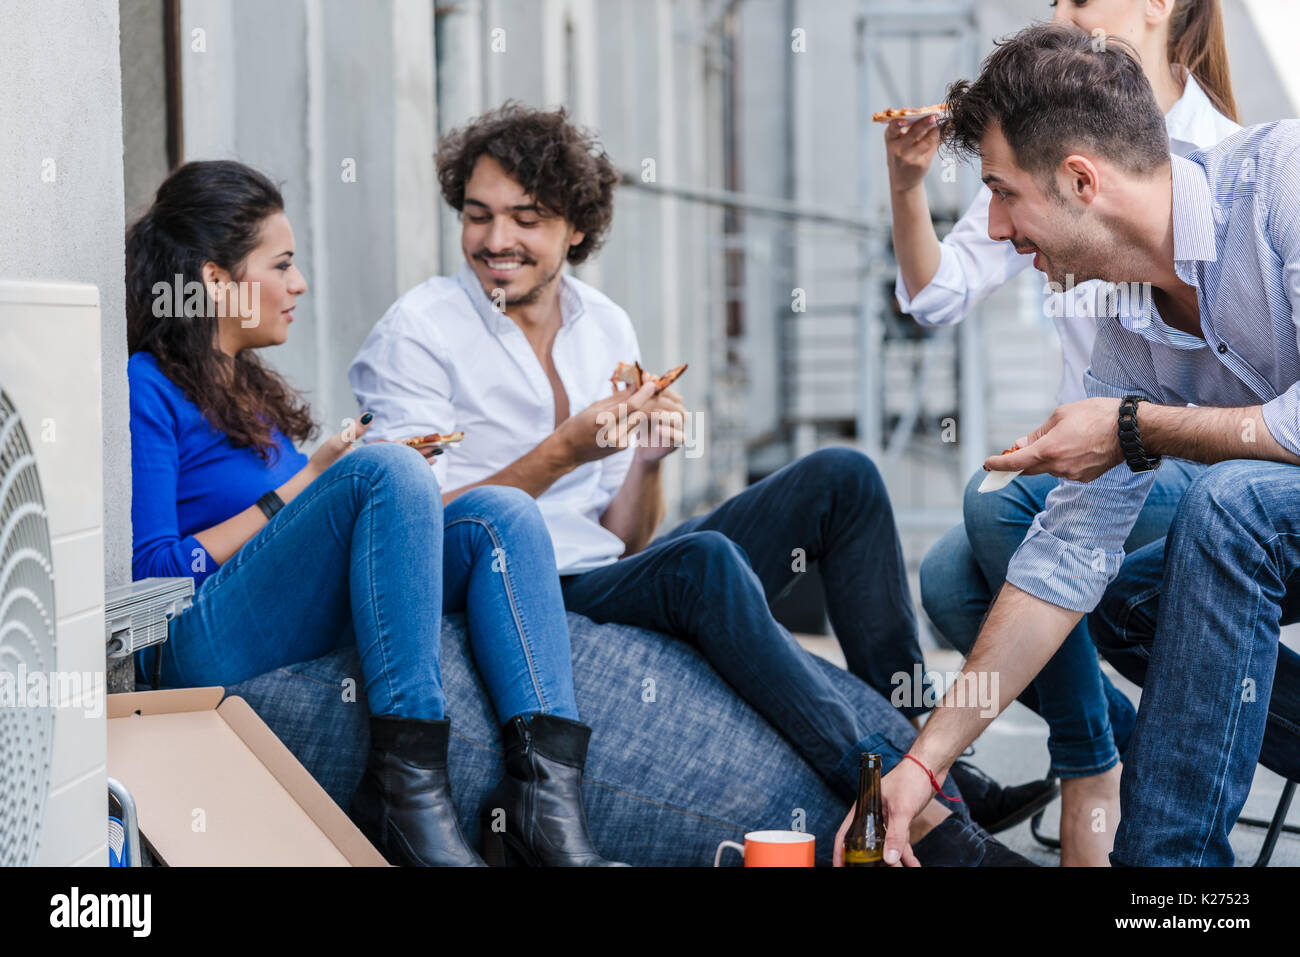 Team of Creative industries agency during lunch at office balcon - Stock Image